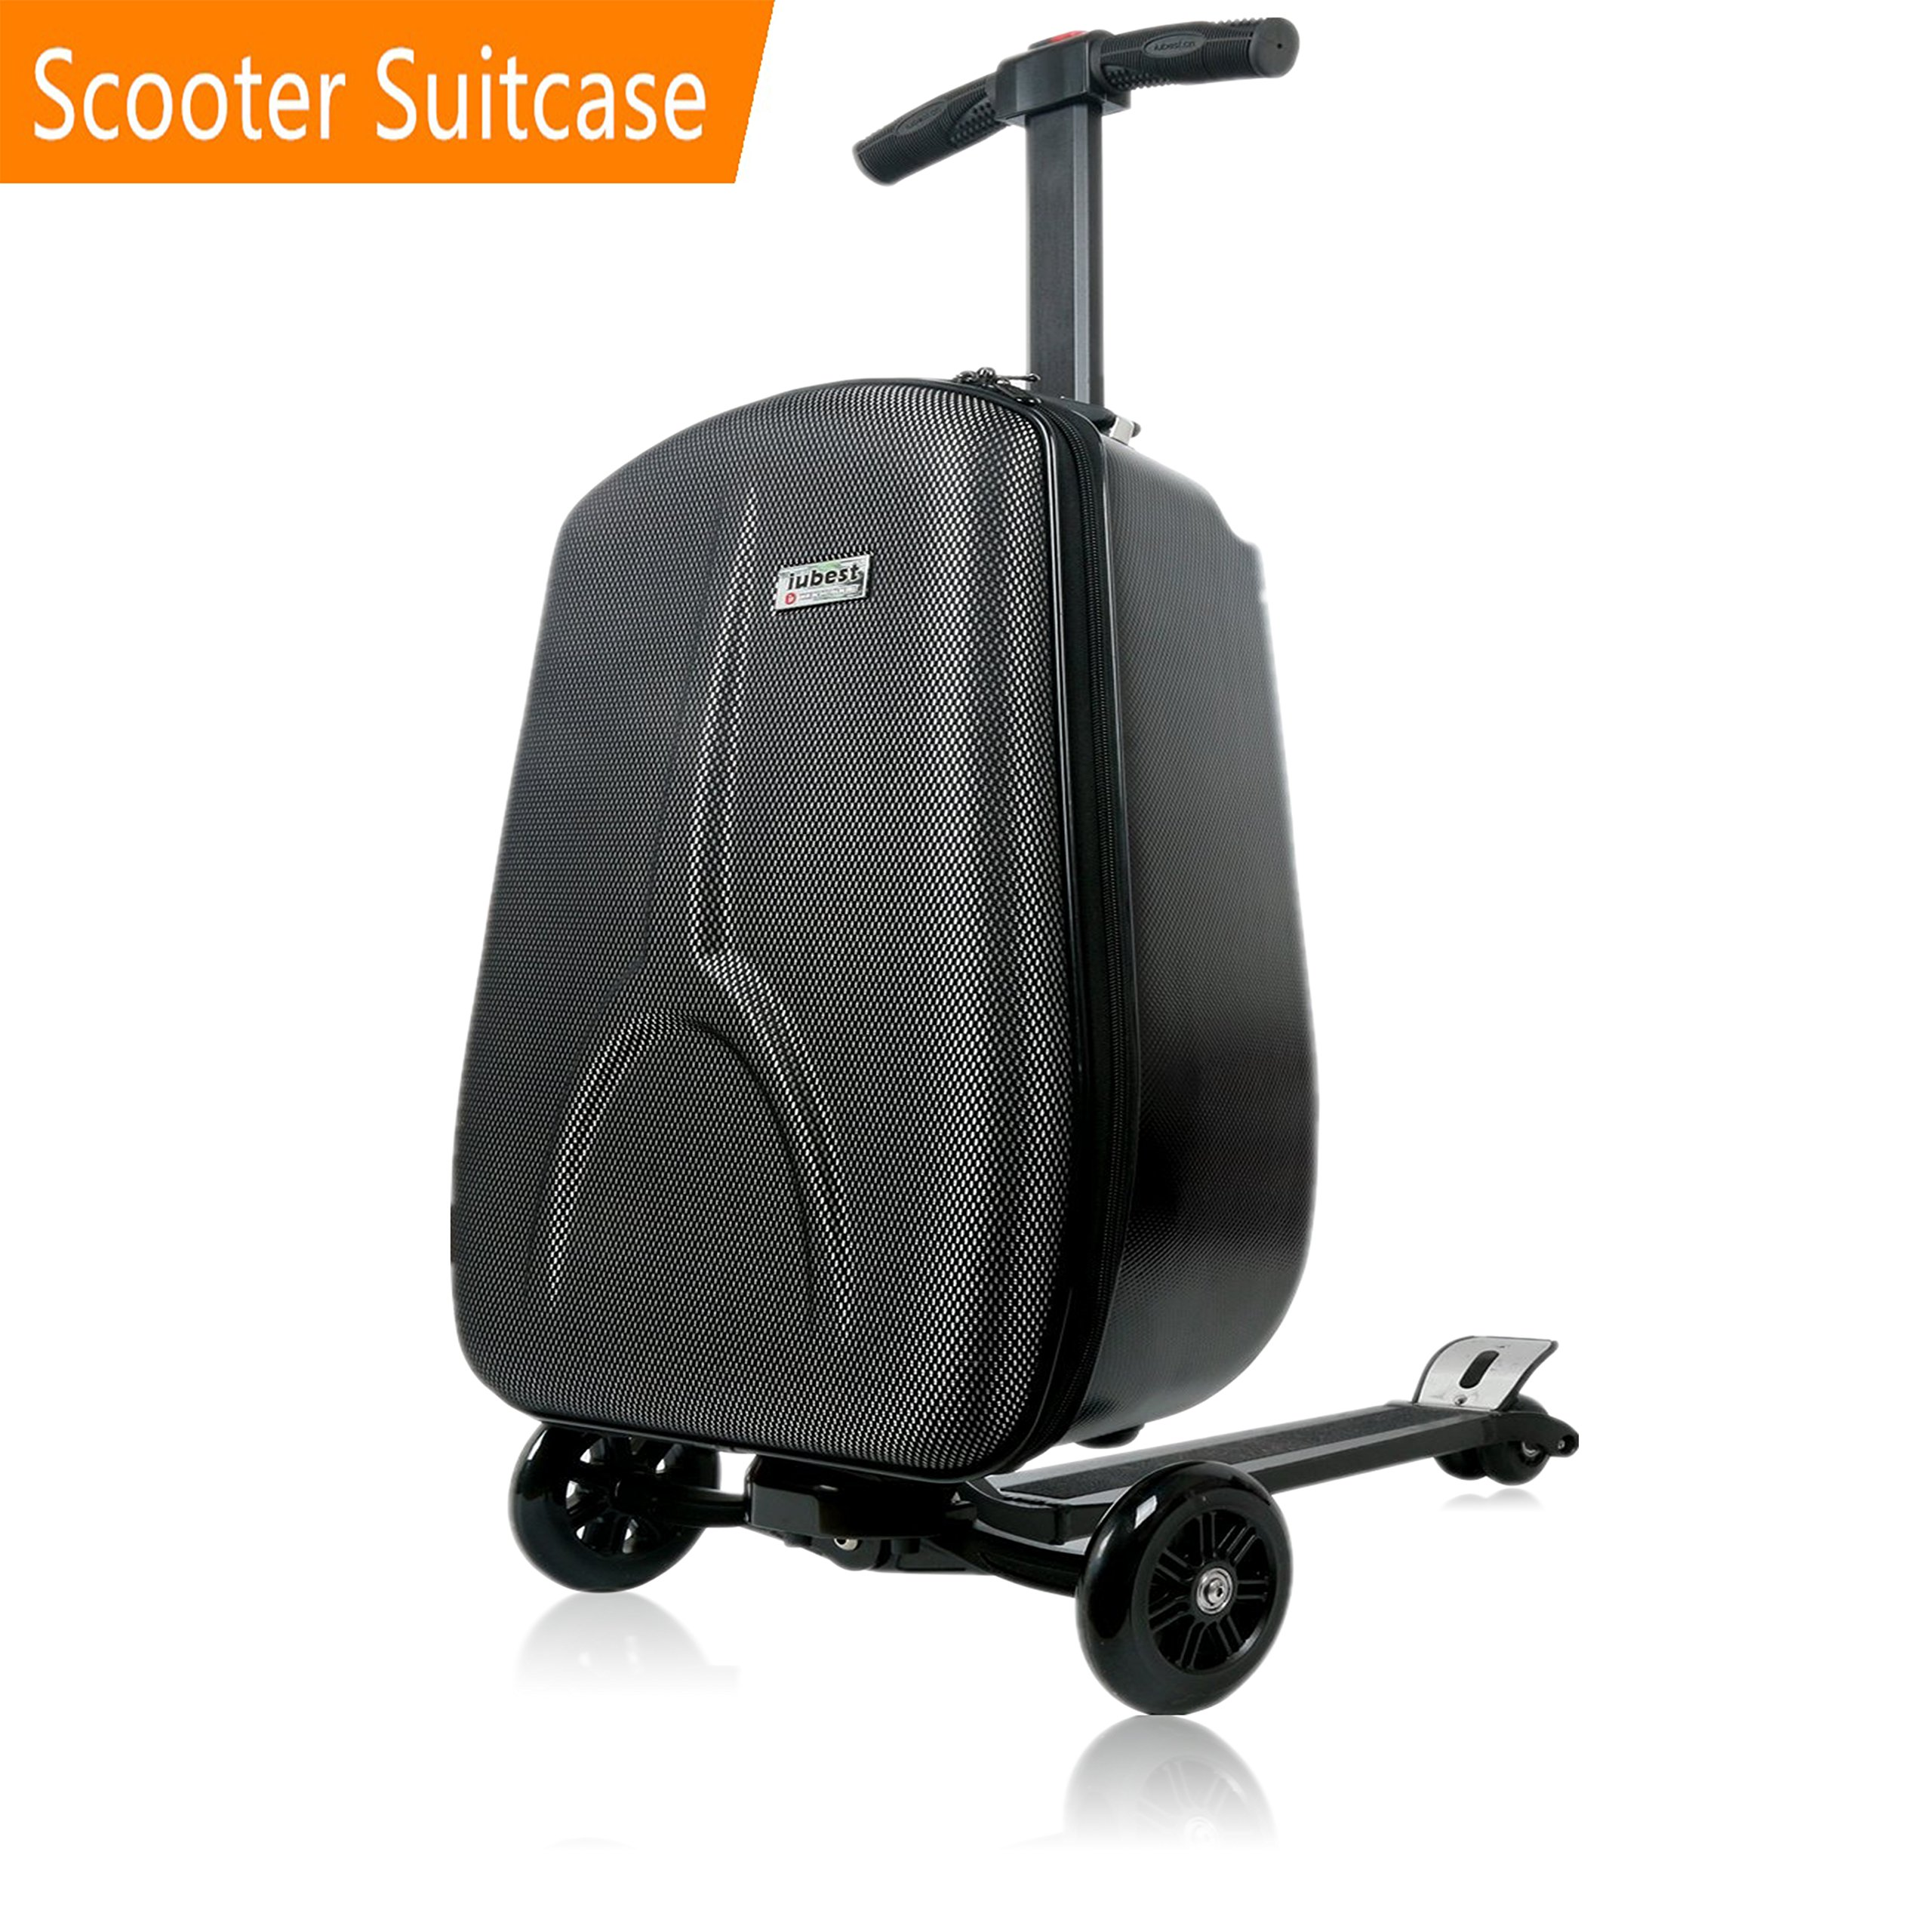 scooter suitcase by iubest, travel scooter luggage, multi functional suitcase, perfect for business travel and school, black, 50 liter, 18 inches